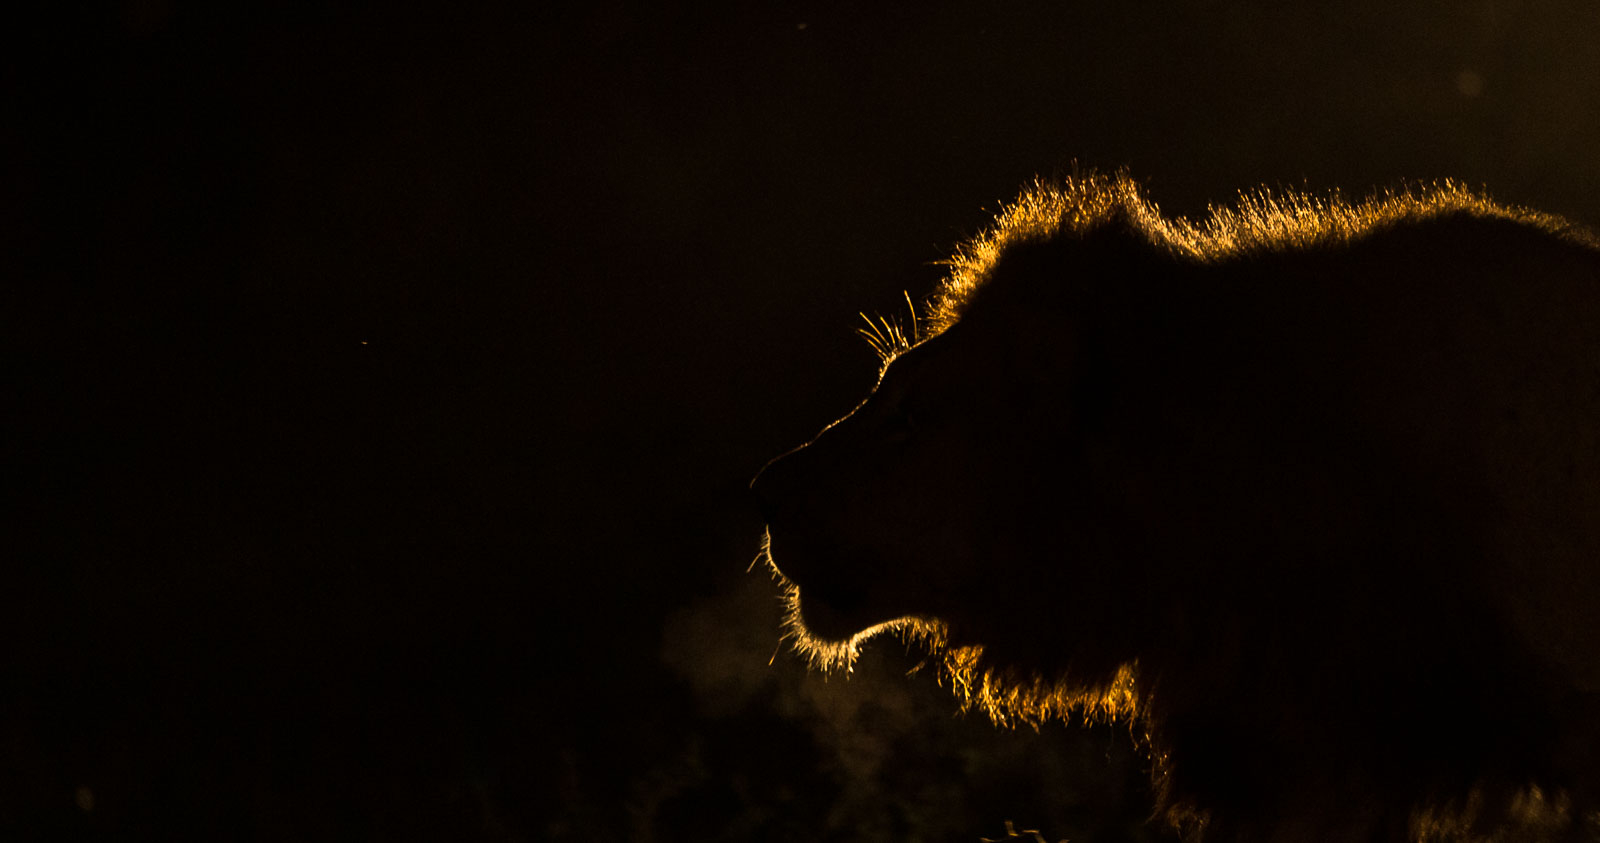 Male lion silhouette